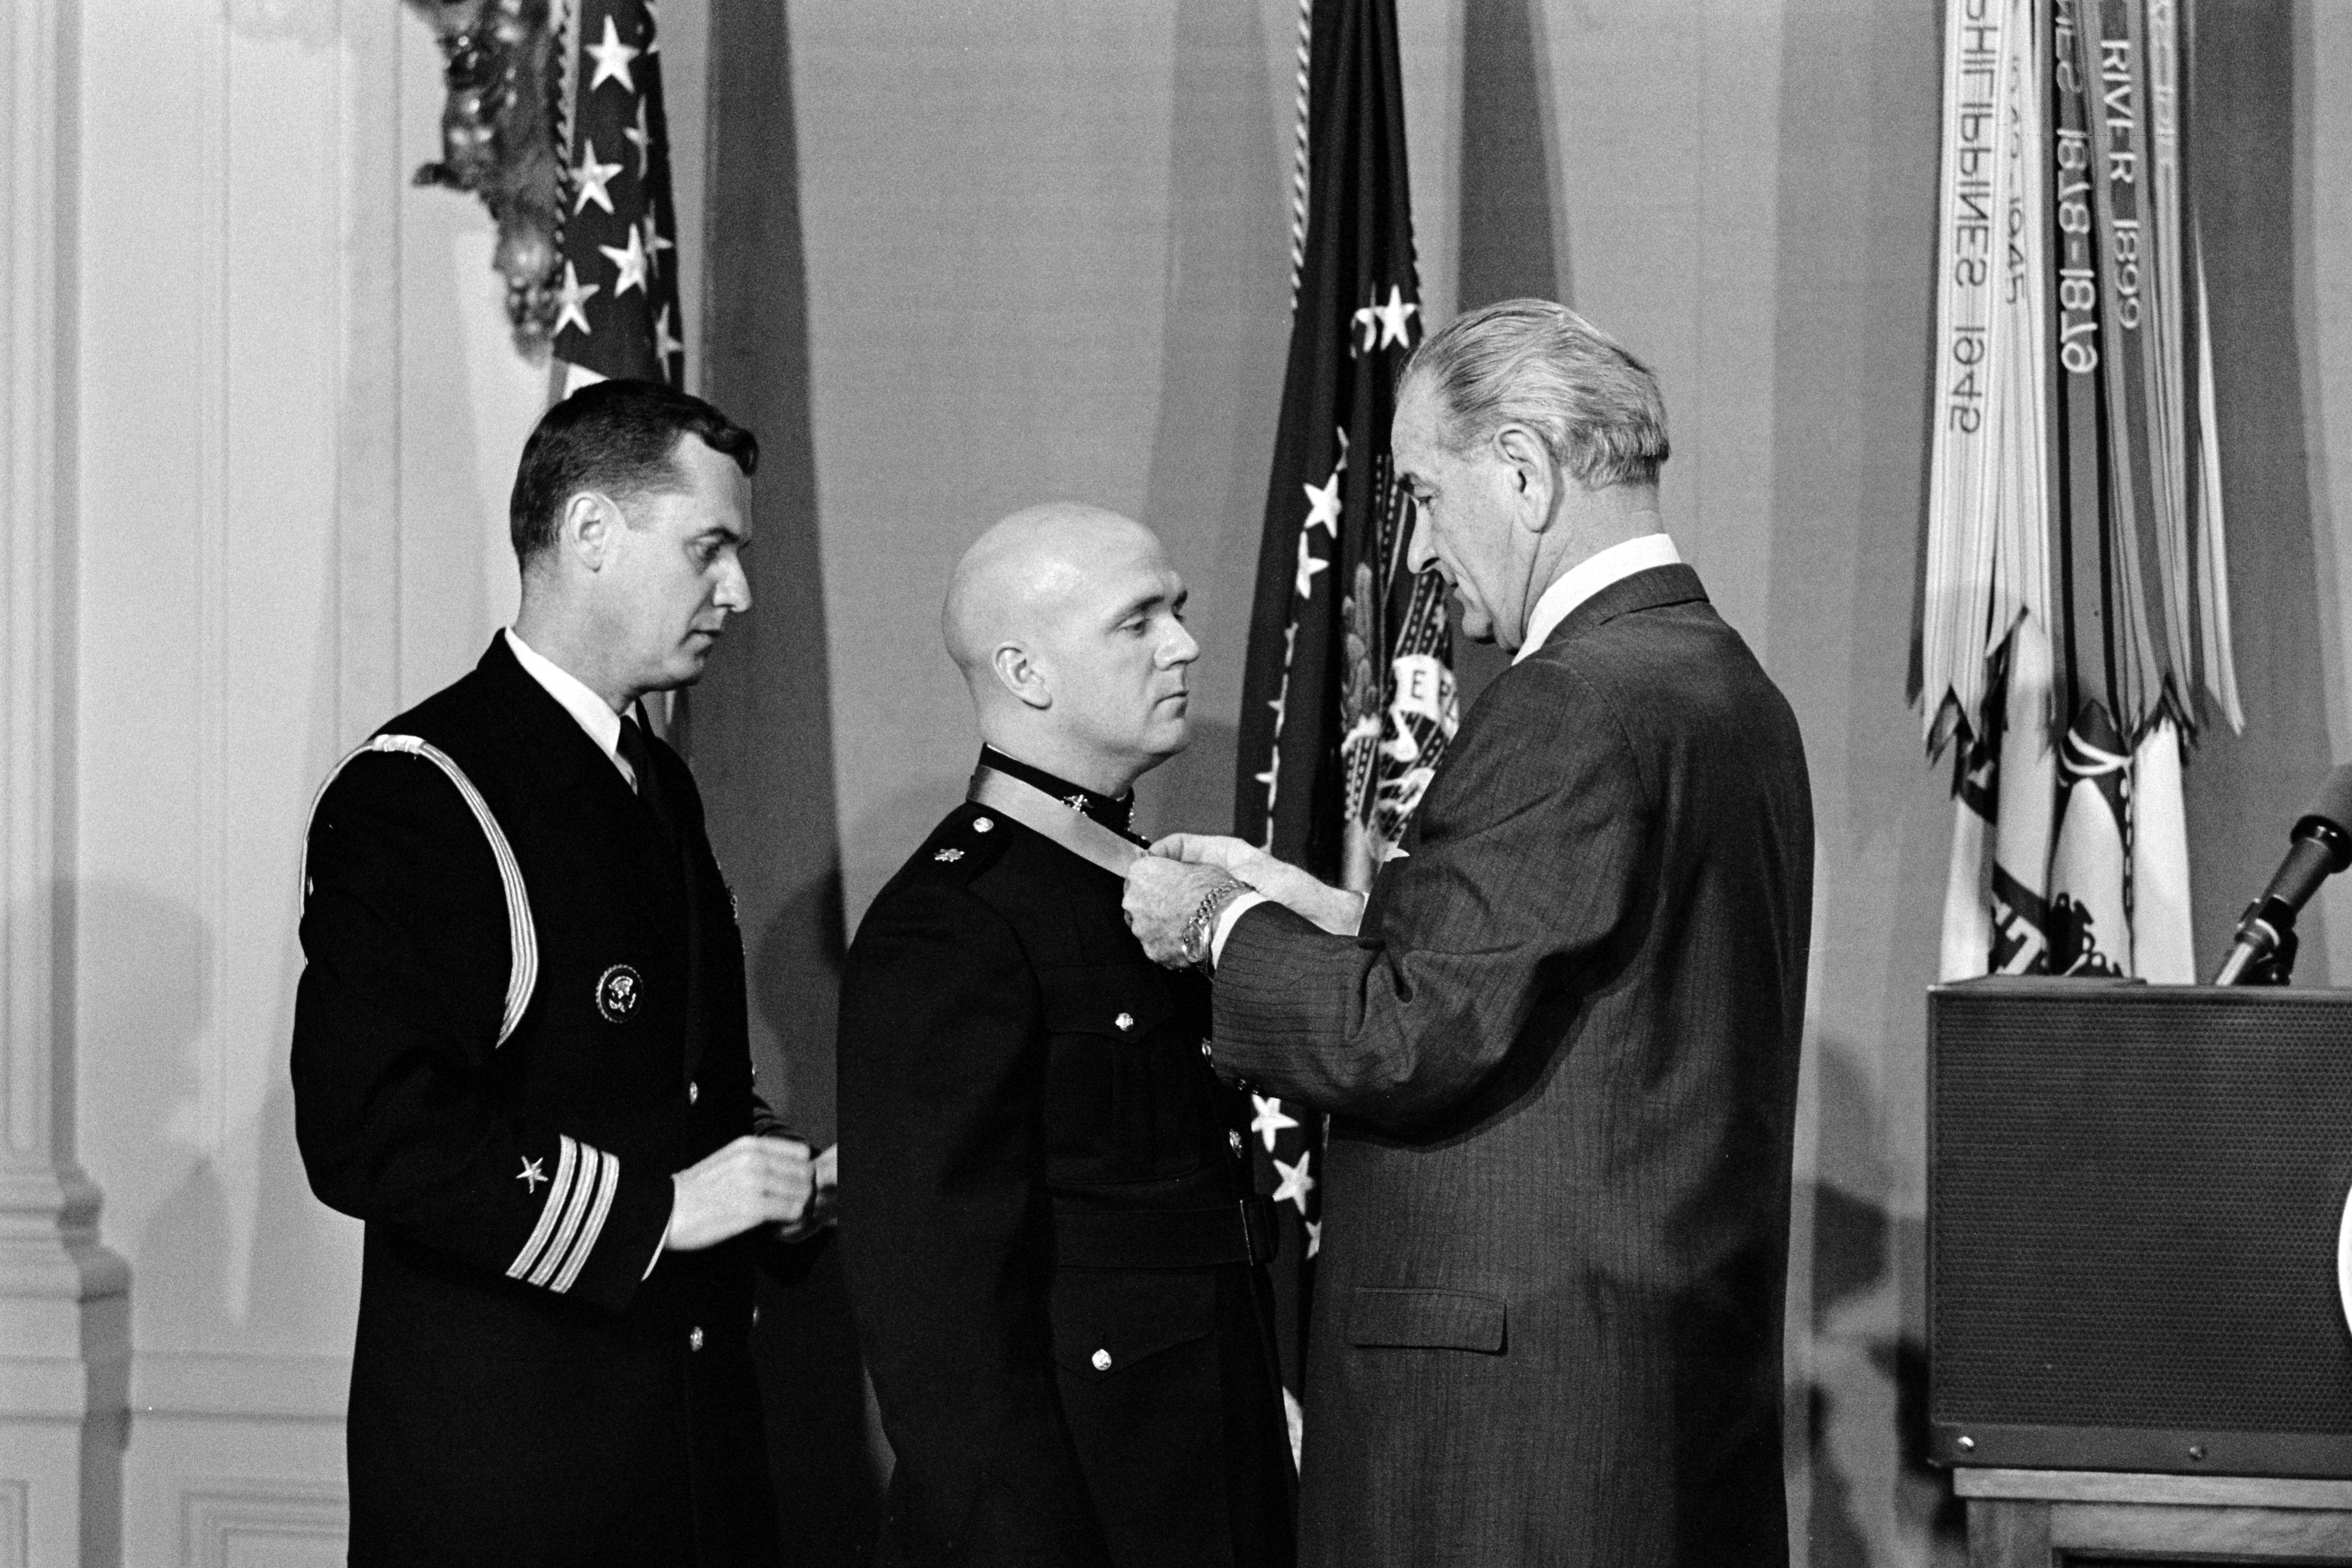 LBJ confers the Medal of Honor on a U.S. Marine.